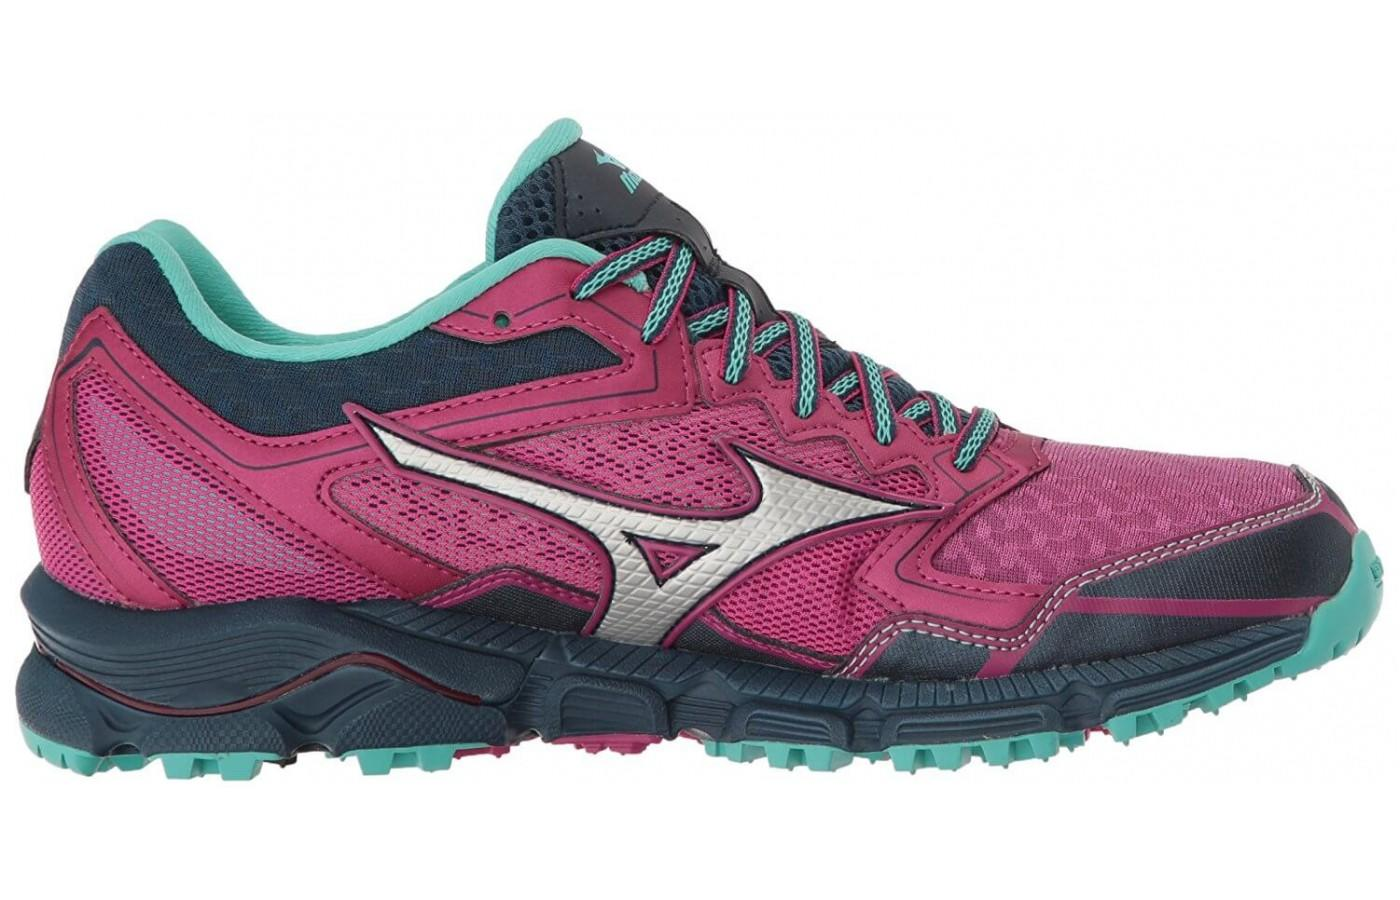 Mizuno Wave Daichi 2 features wave construction